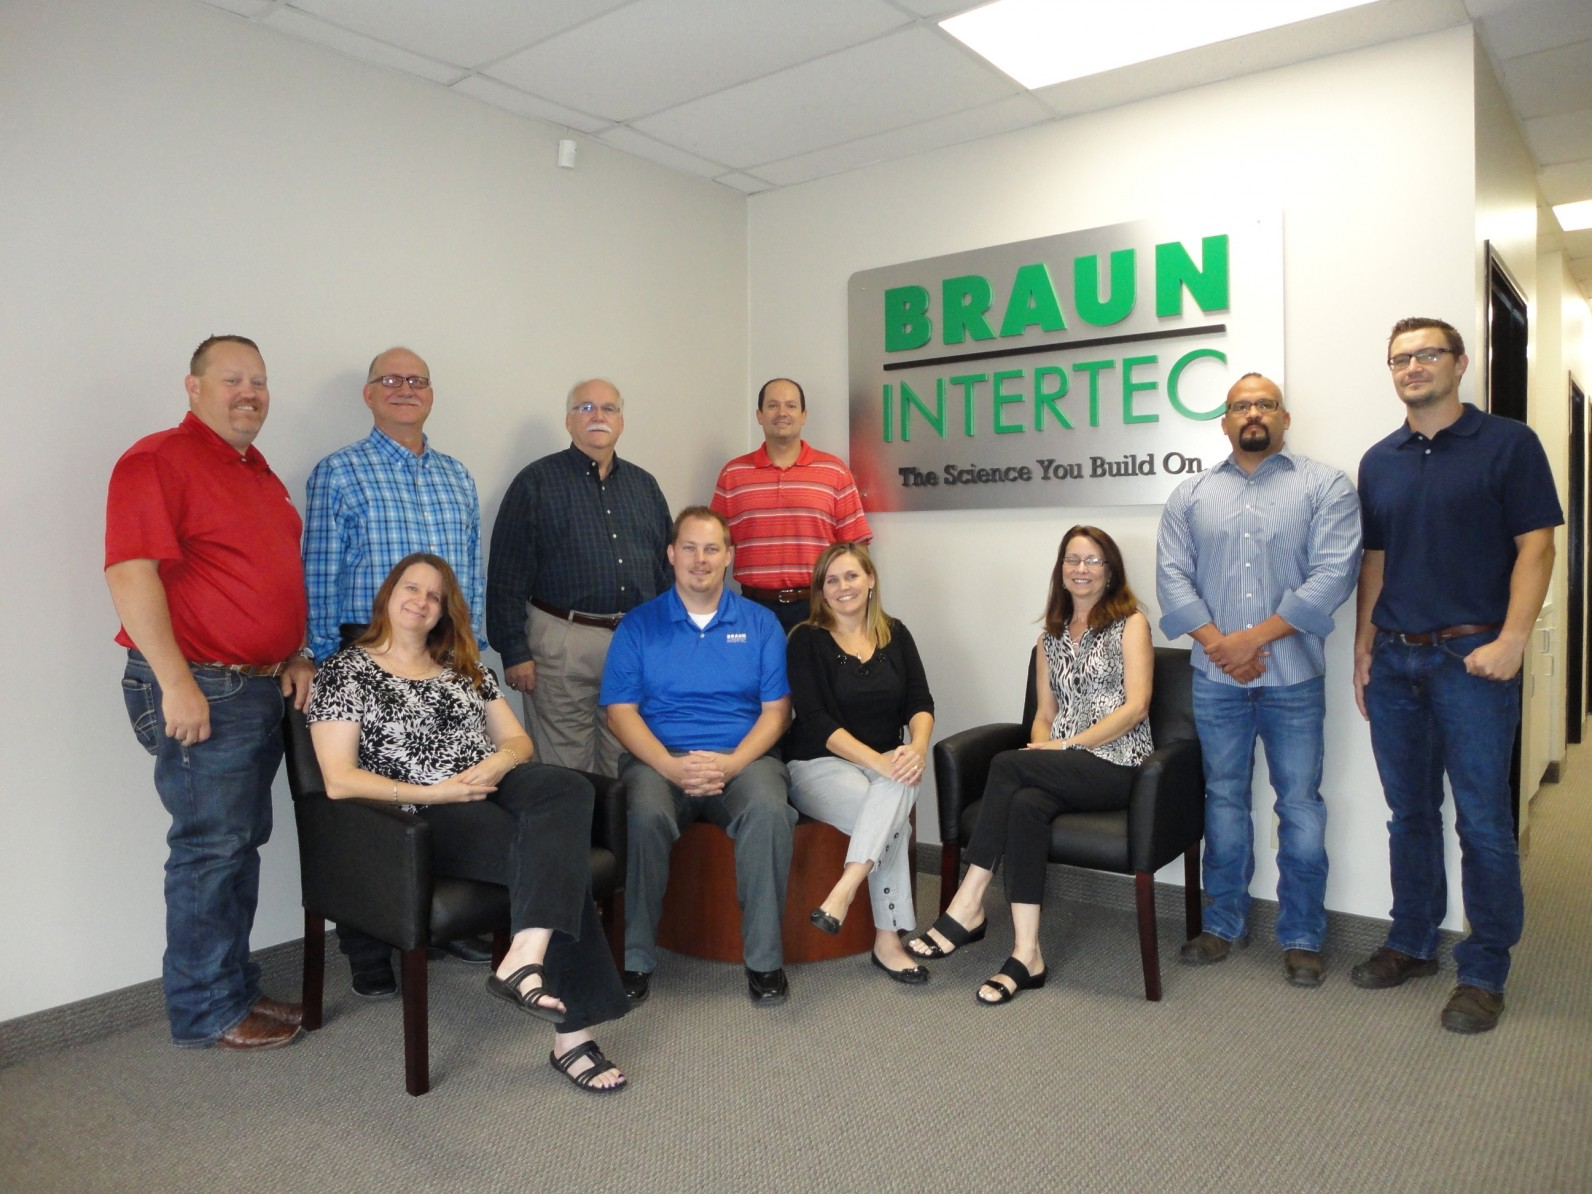 Braun Intertec Dallas/Fort Worth staff